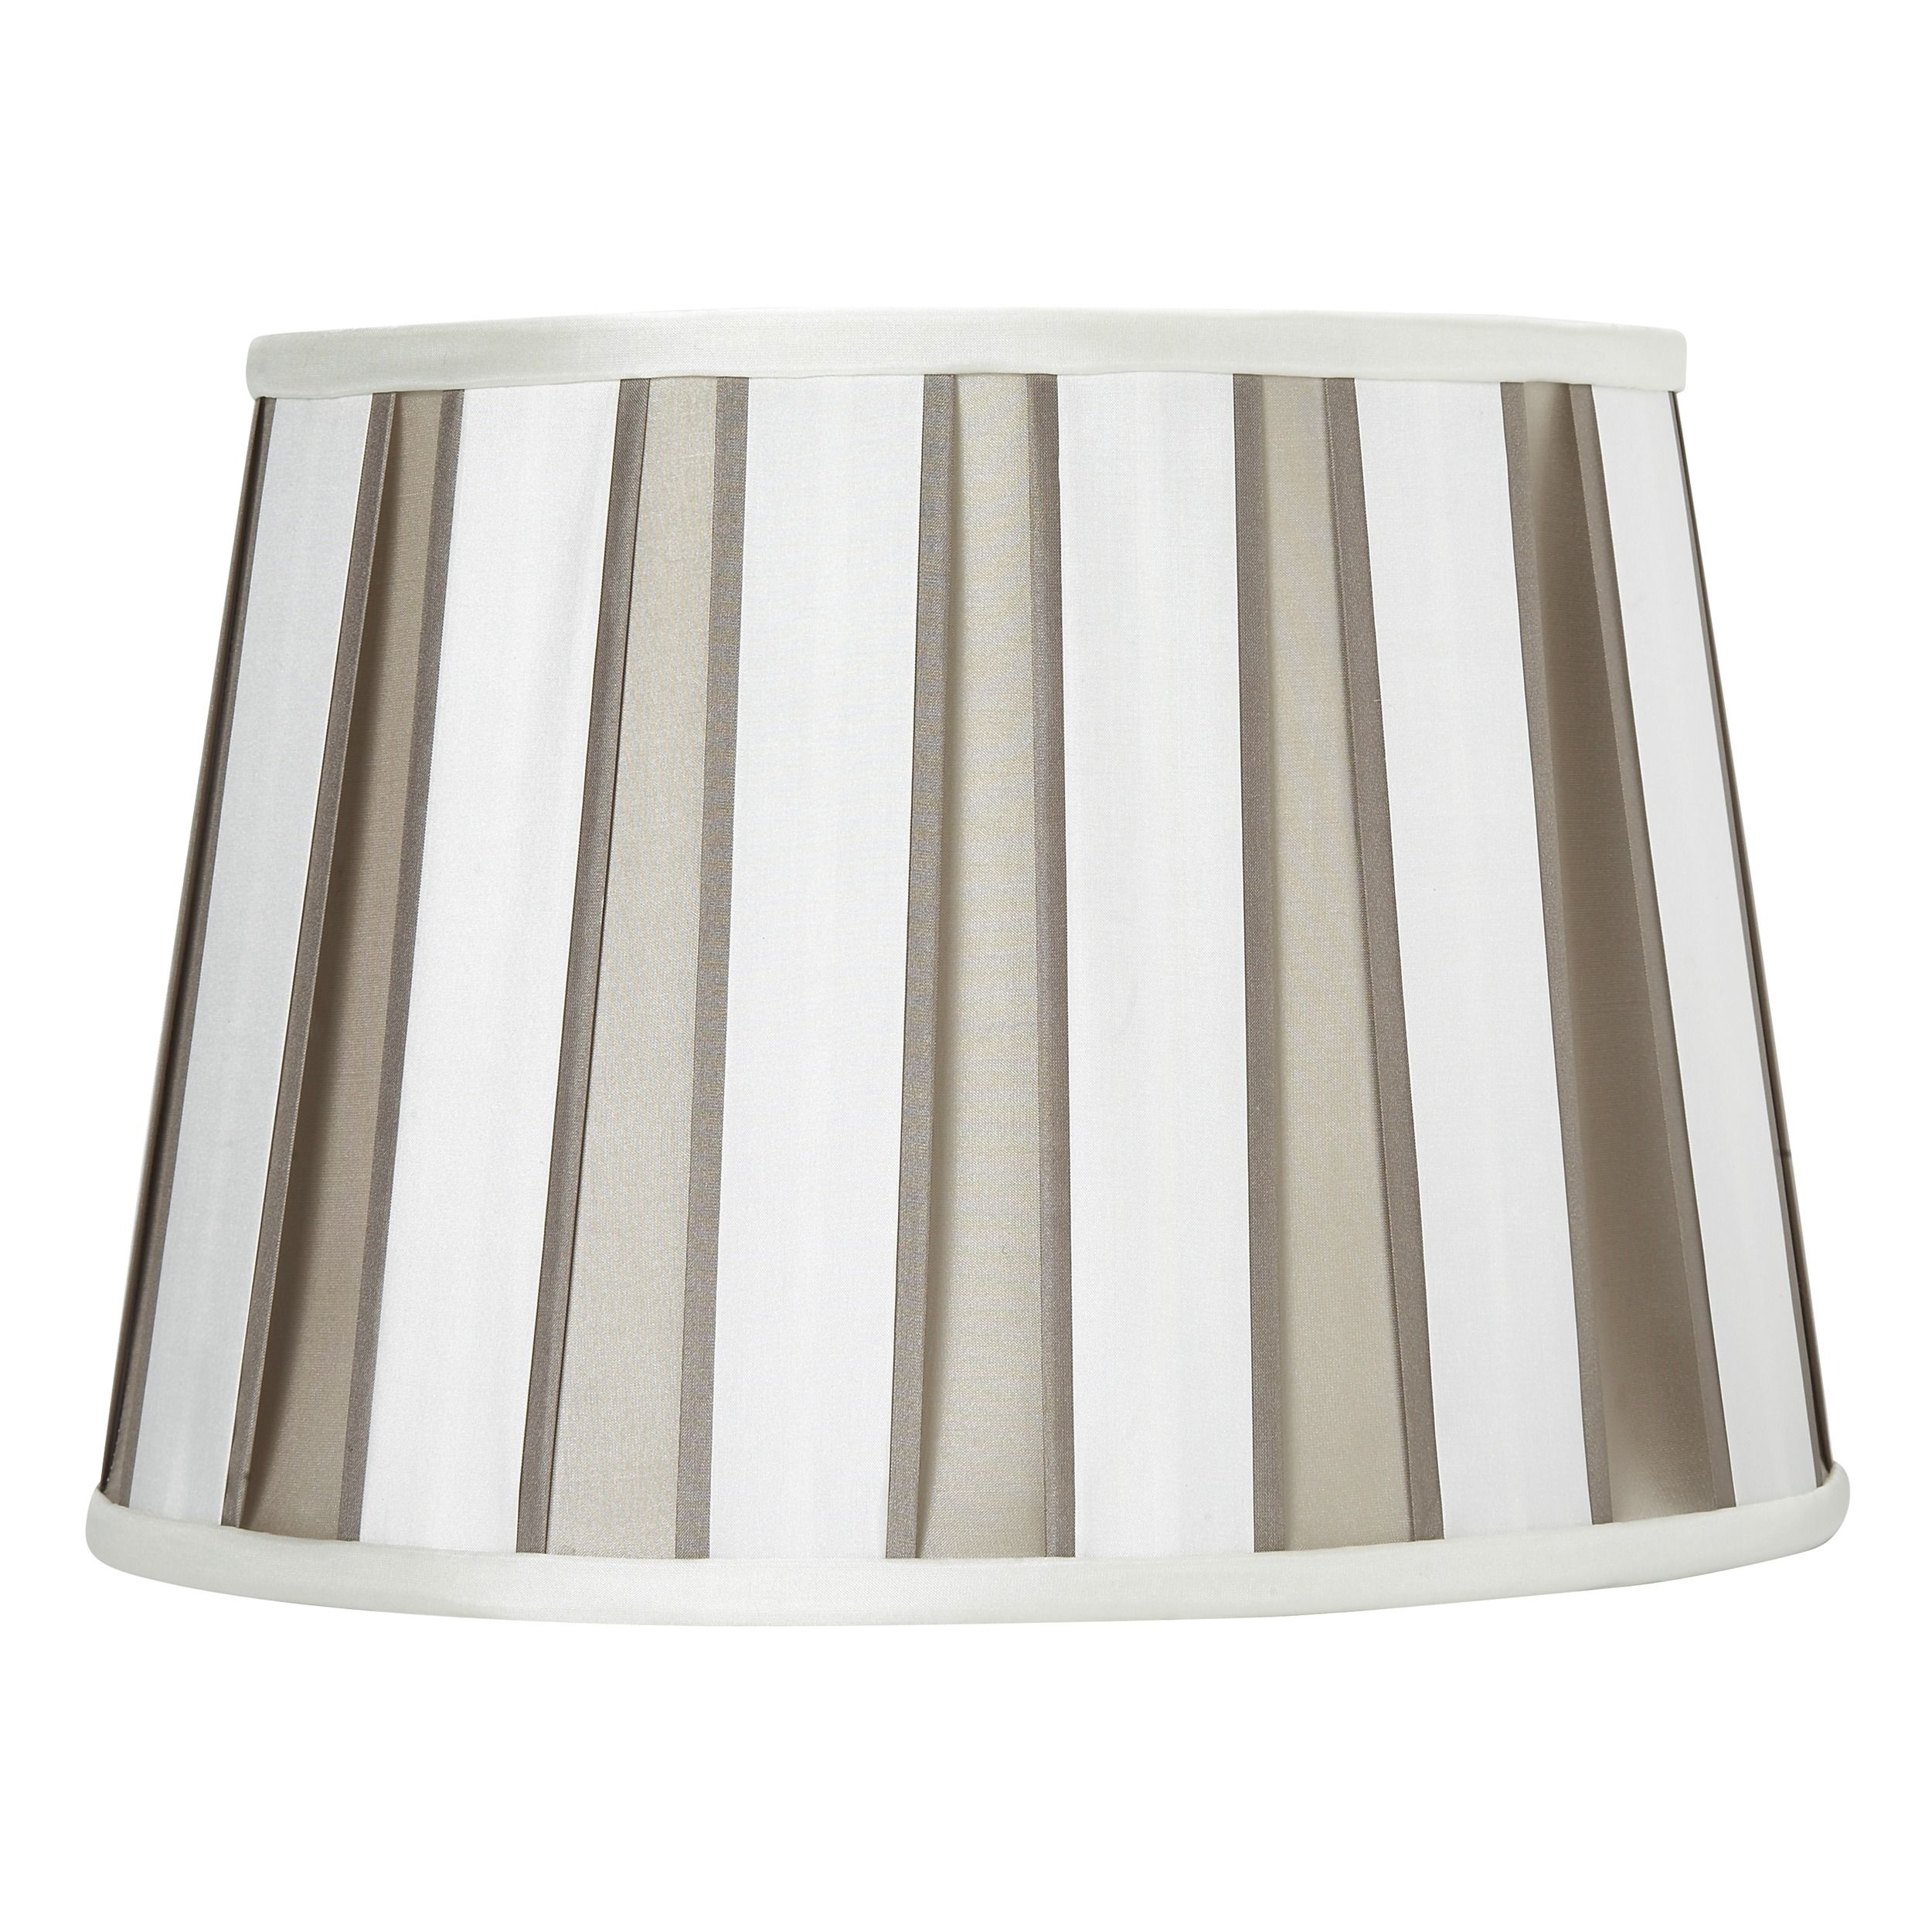 12 oval natural vertical striped lamp shade laura ashley lighting 12 oval natural vertical striped lamp shade laura ashley aloadofball Images